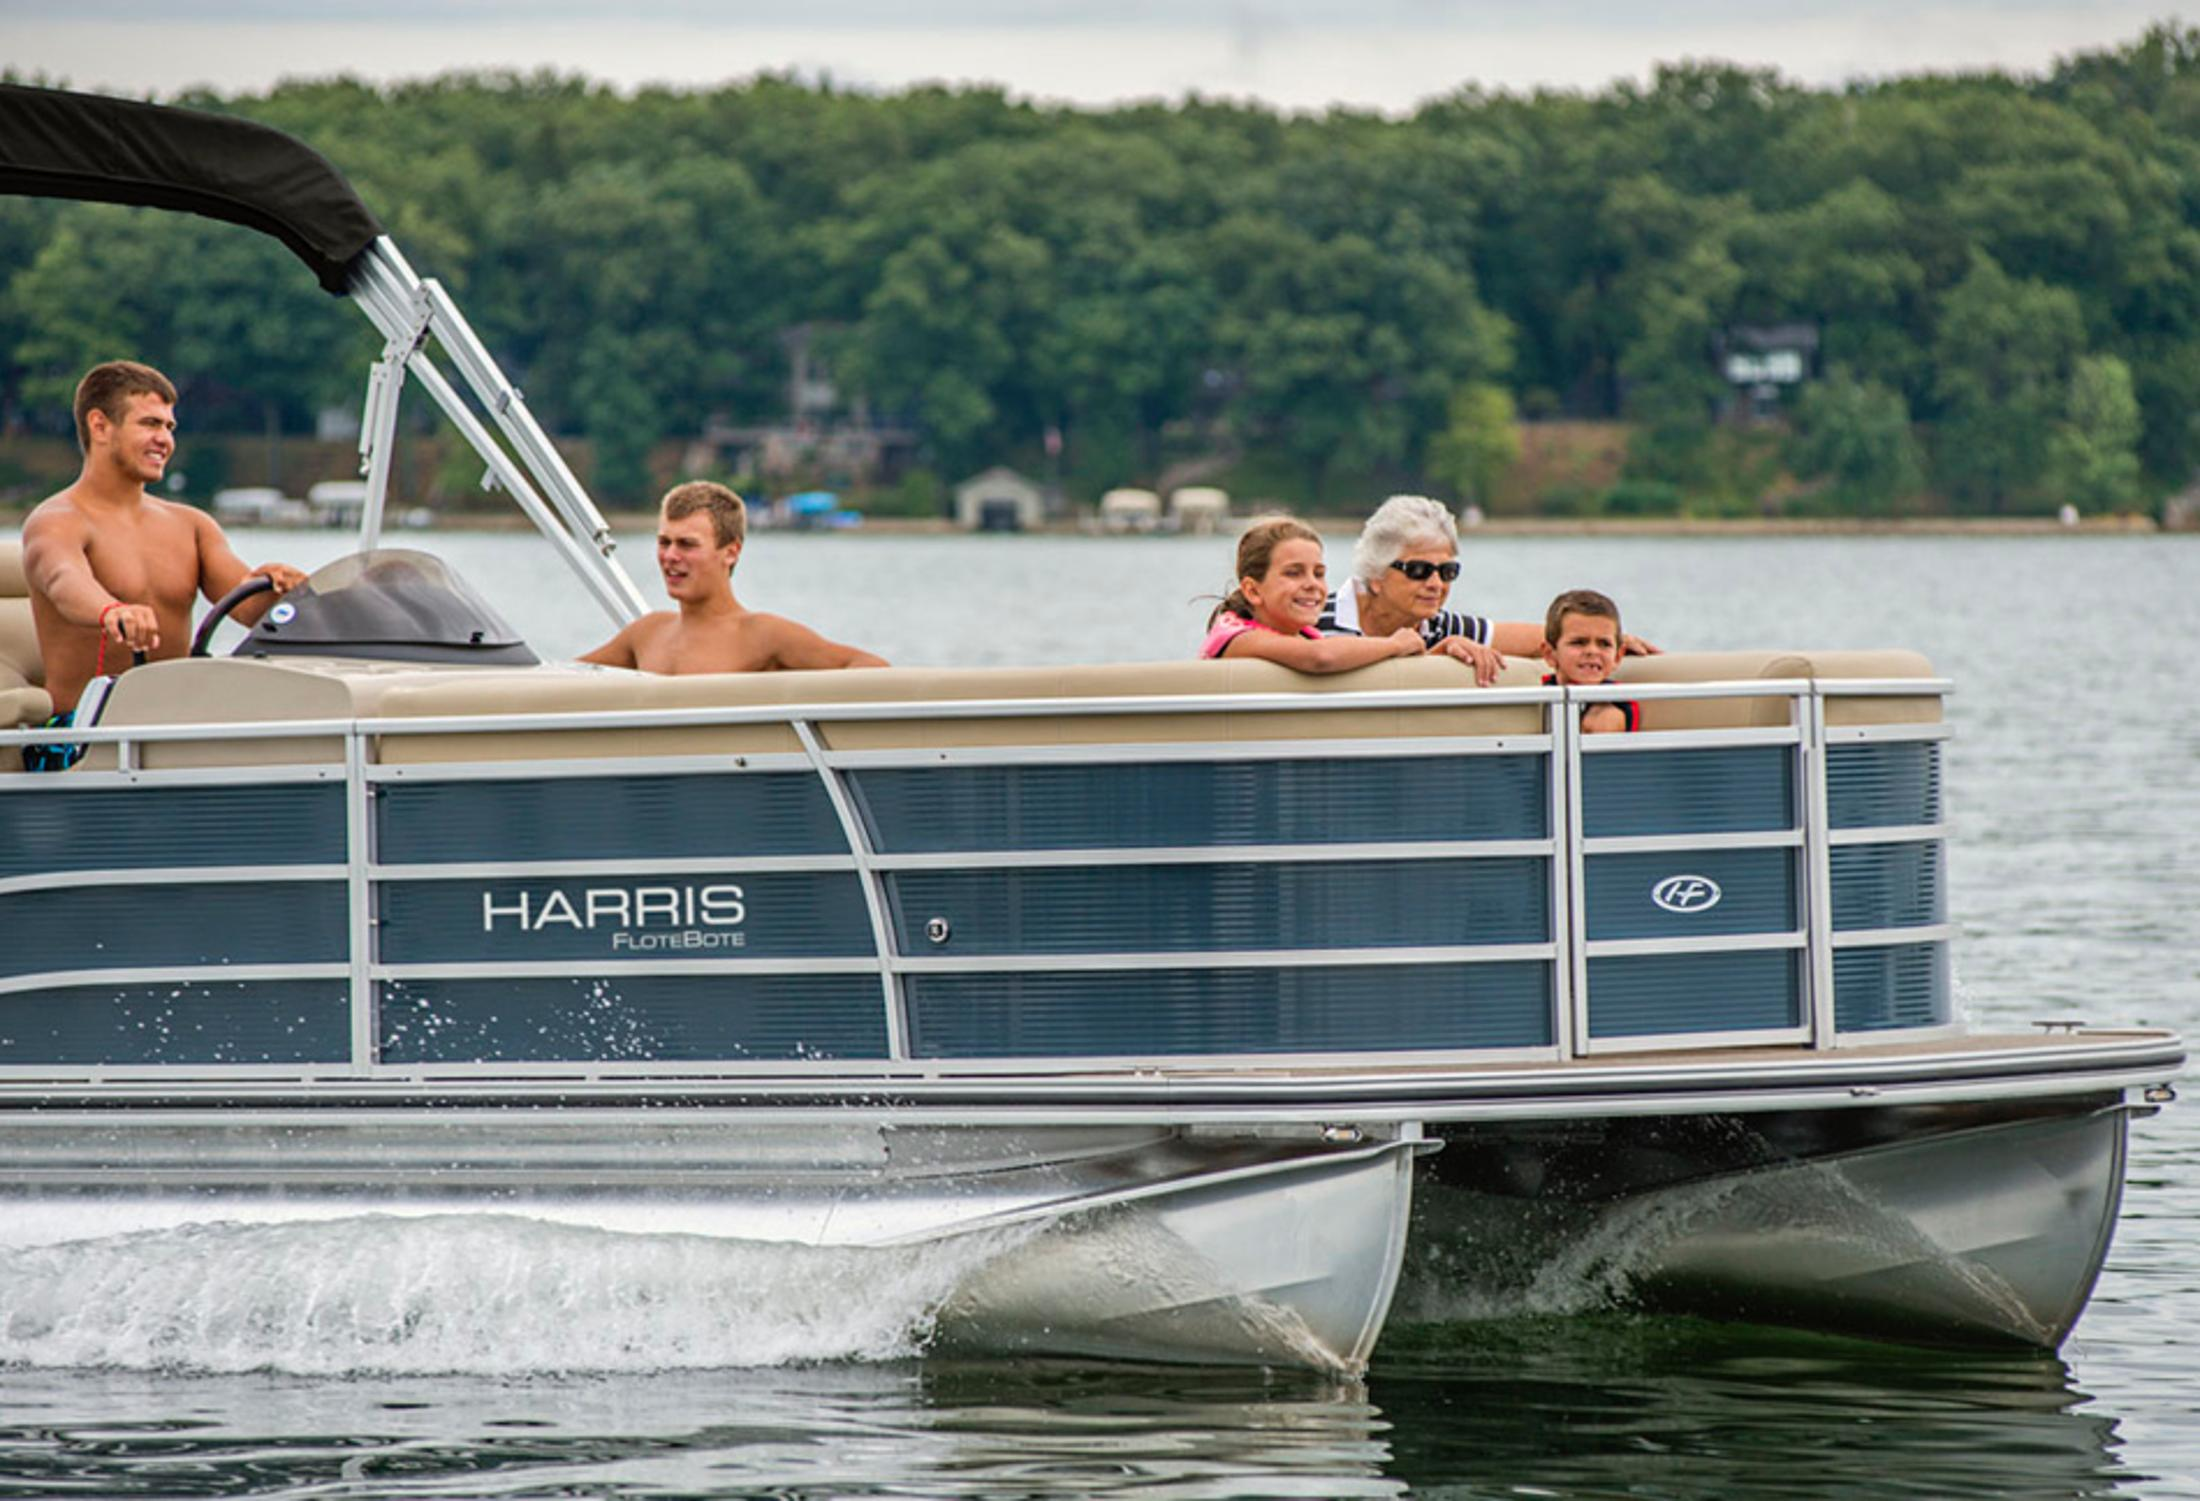 2013 Harris Flotebote Solstice 240 in Manitou Beach, Michigan